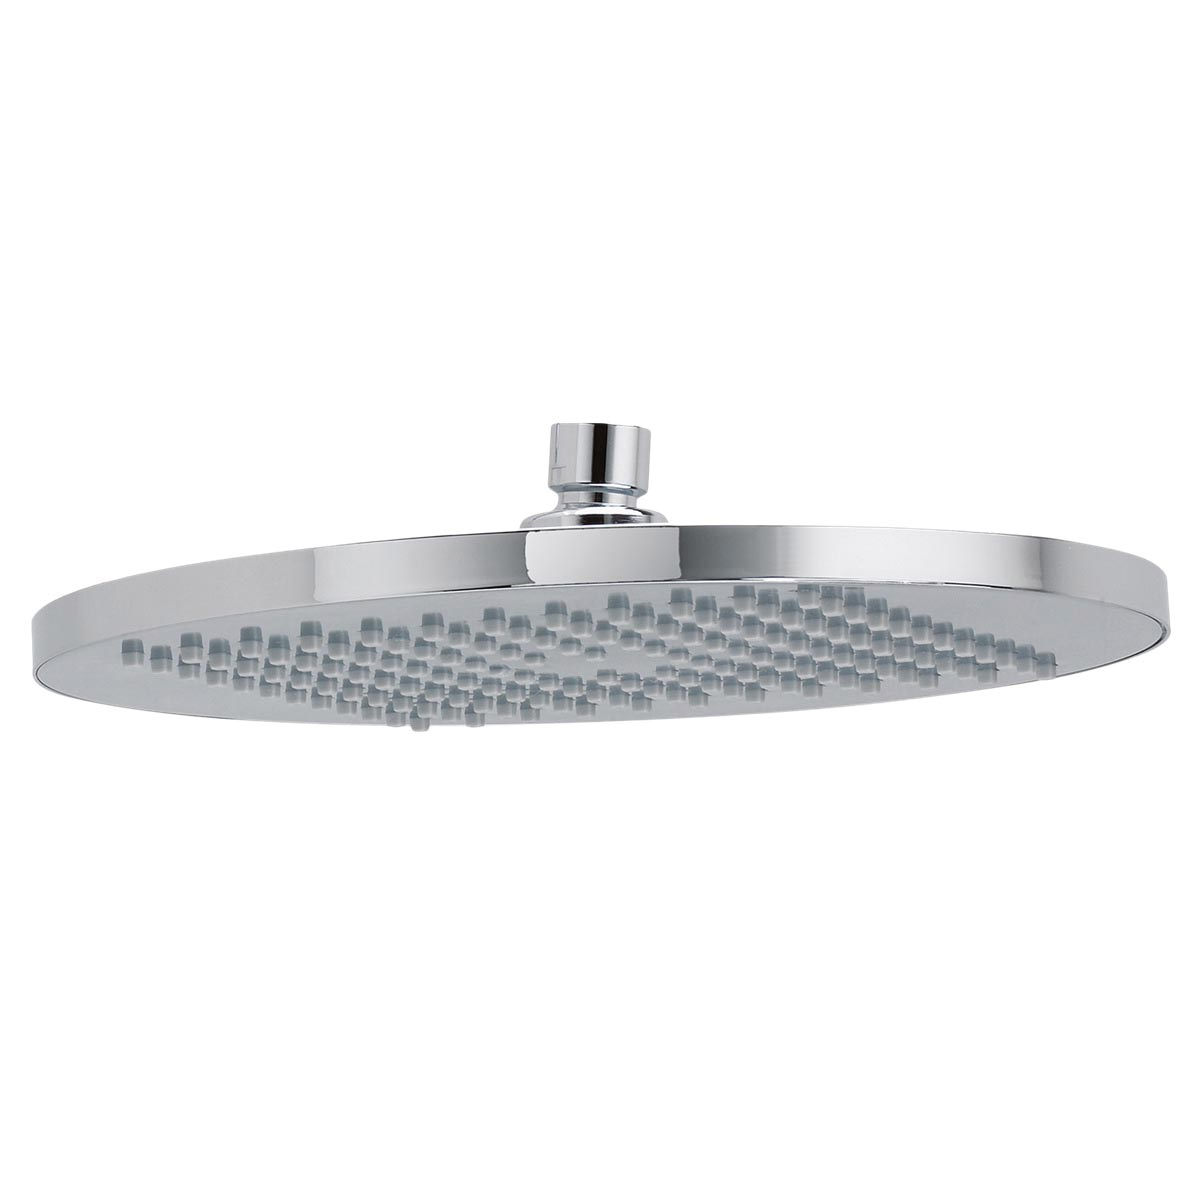 American Standard 1660683.002 Modern Showerhead Only, 2.5 gpm, 1 Spray, Ceiling Mount, 10 in Dia Head, Import